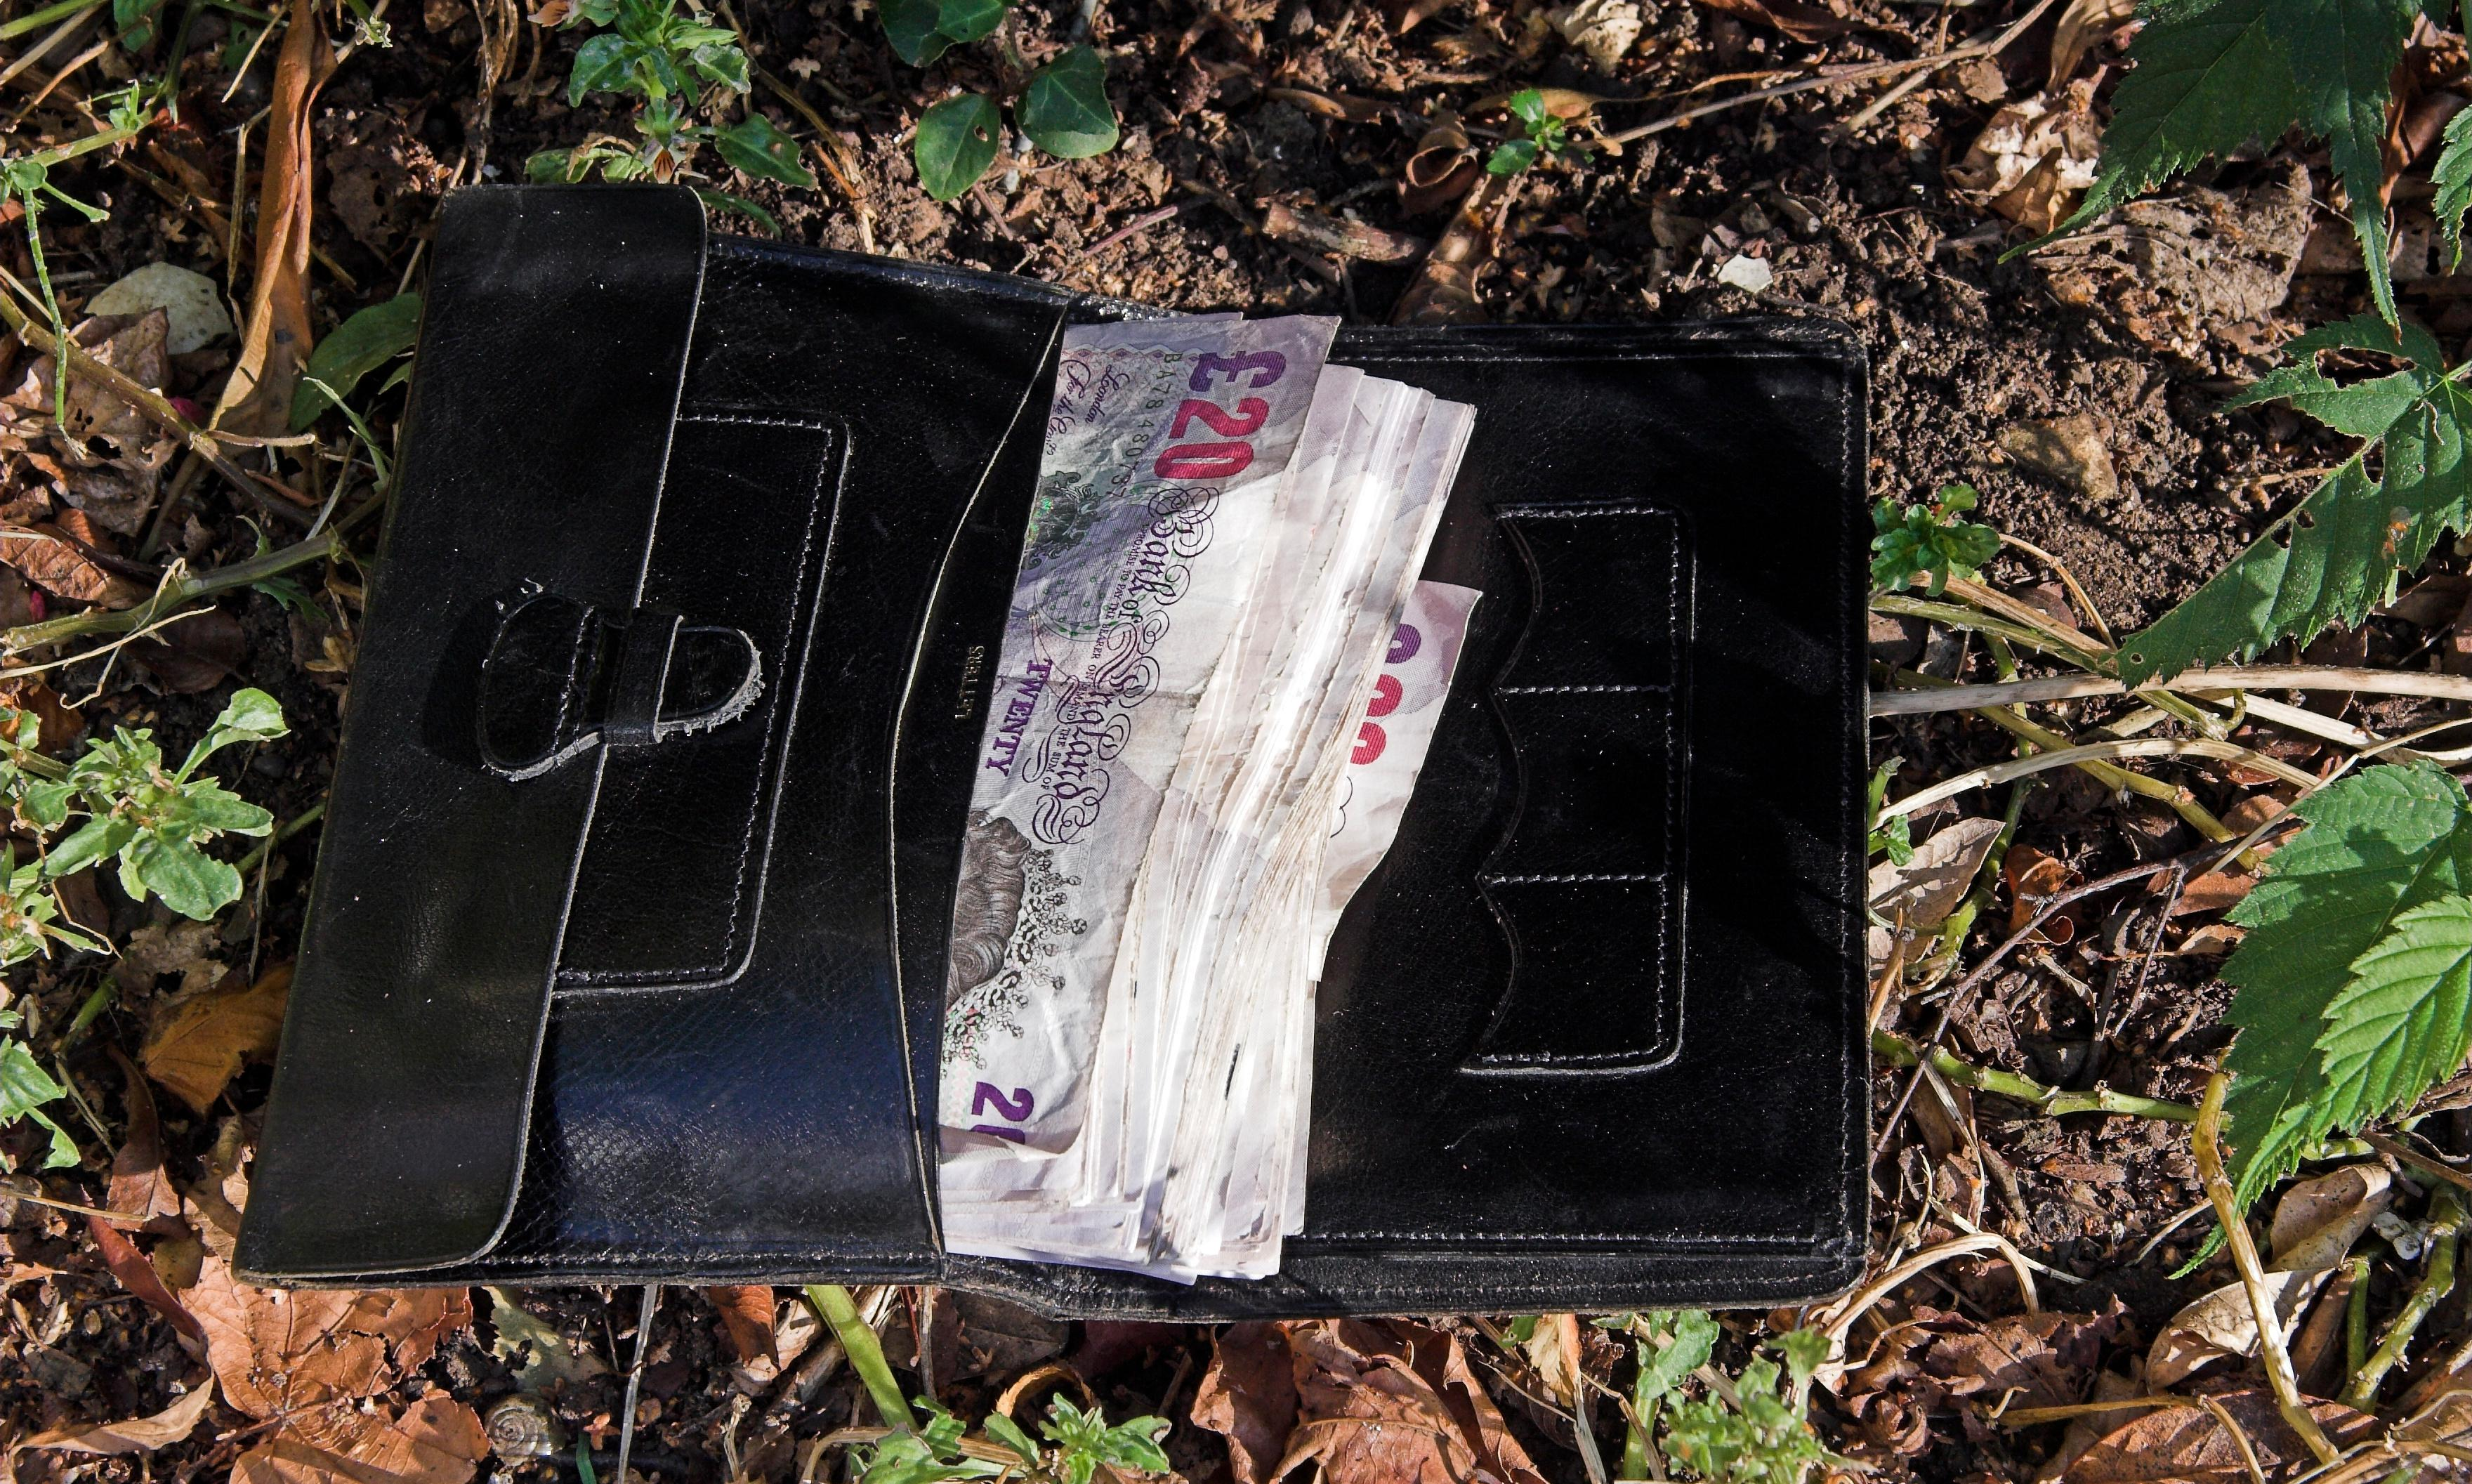 What would you do if you found a wallet? Really? Then prove it